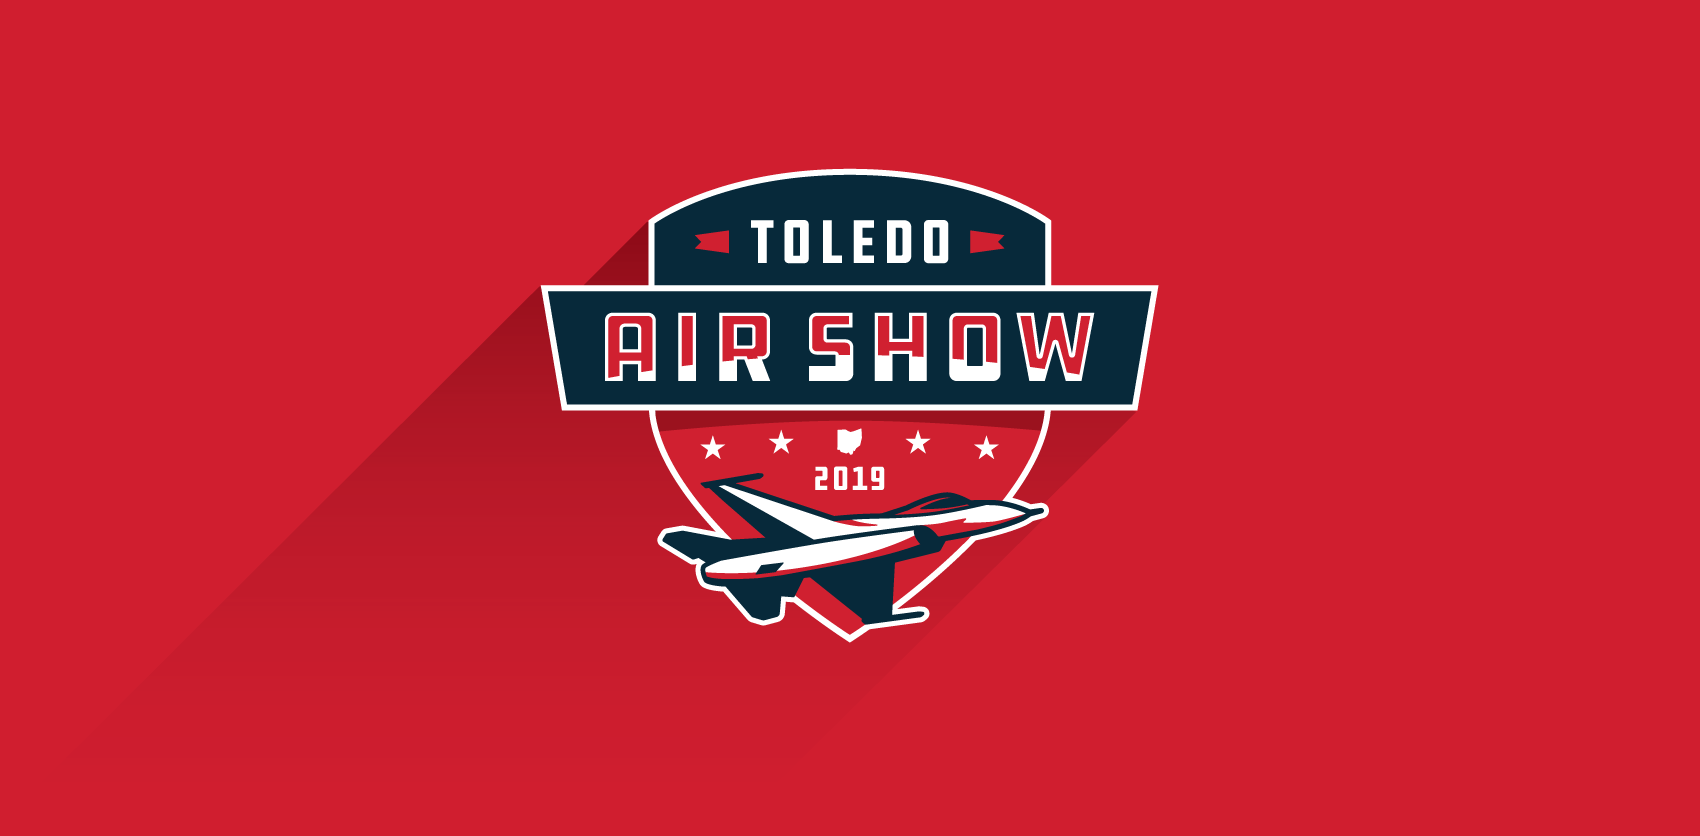 Home - 2019 Toledo Air Show July 13-14